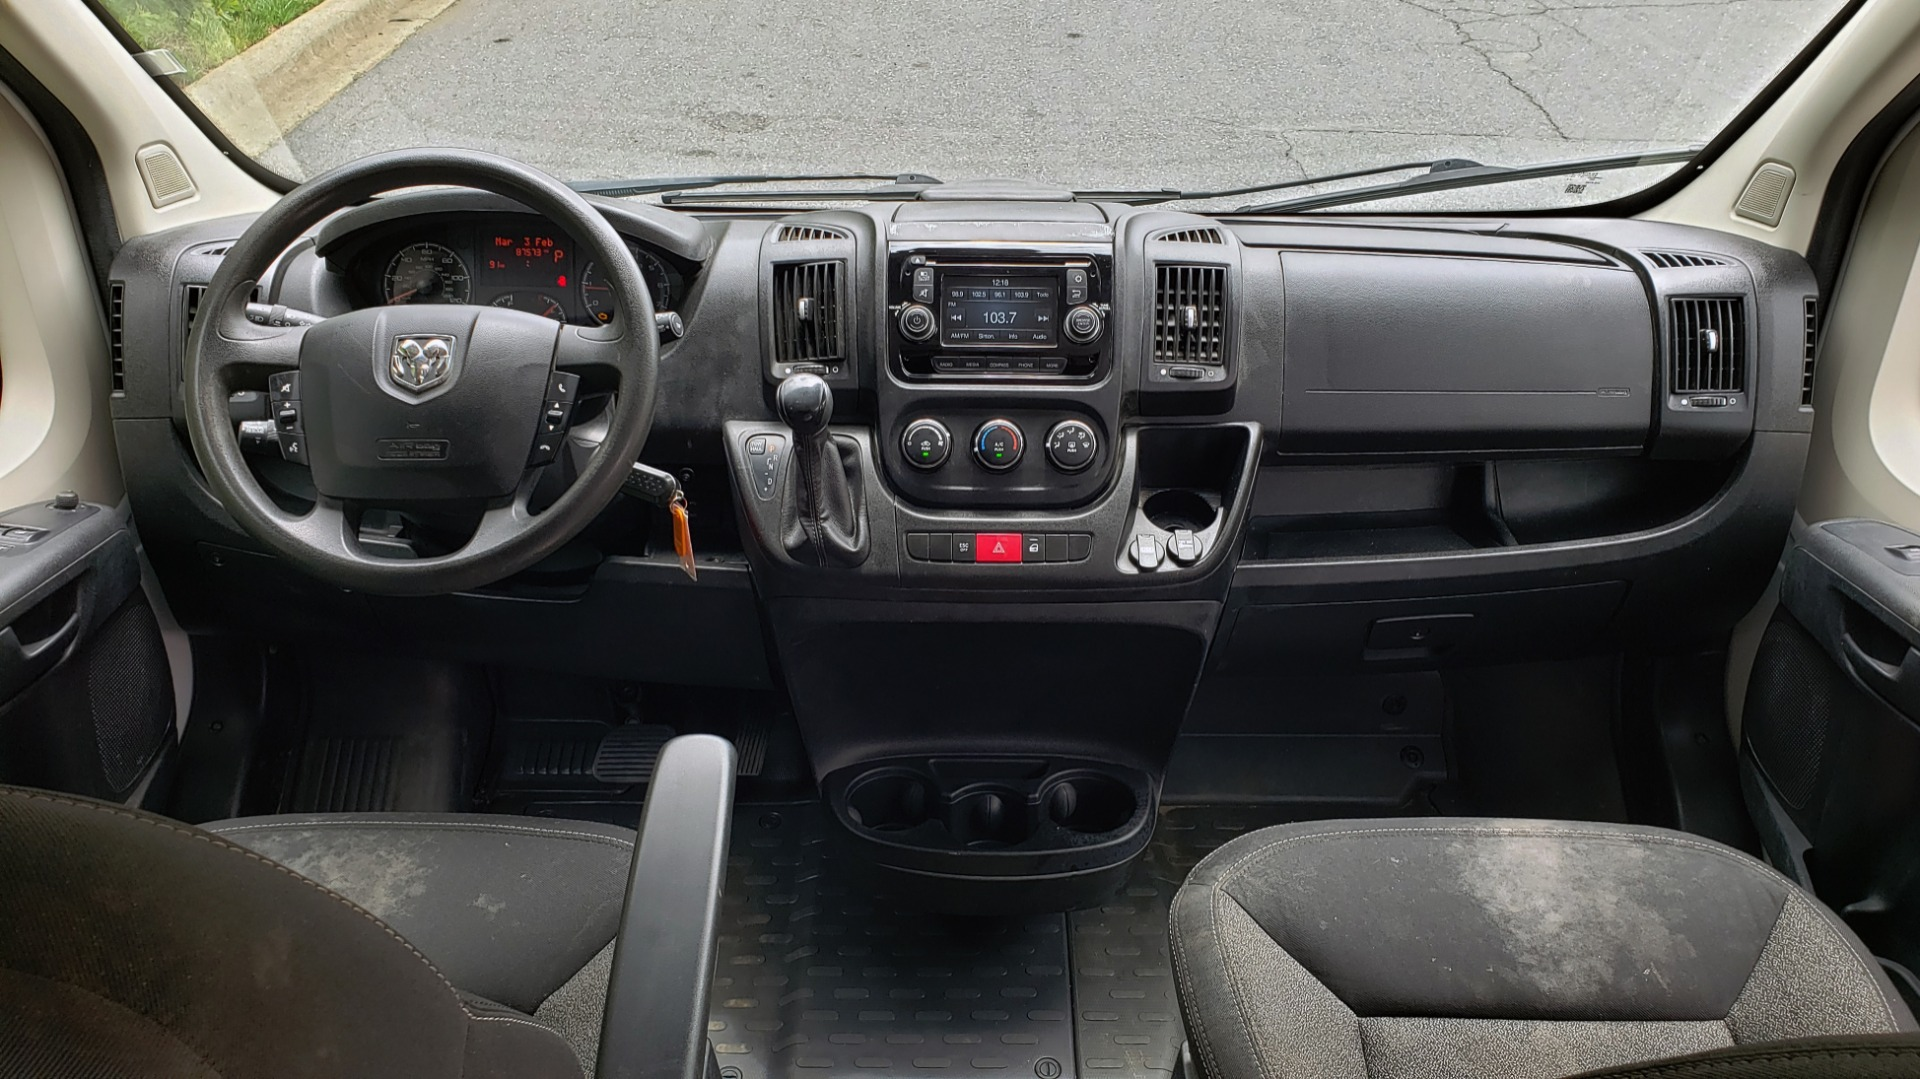 Used 2016 Ram PROMASTER CARGO VAN 136 WB / 3.6L V6 / AUTO / ROOF-RACK / REARVIEW / SEATS 5 for sale $15,995 at Formula Imports in Charlotte NC 28227 17